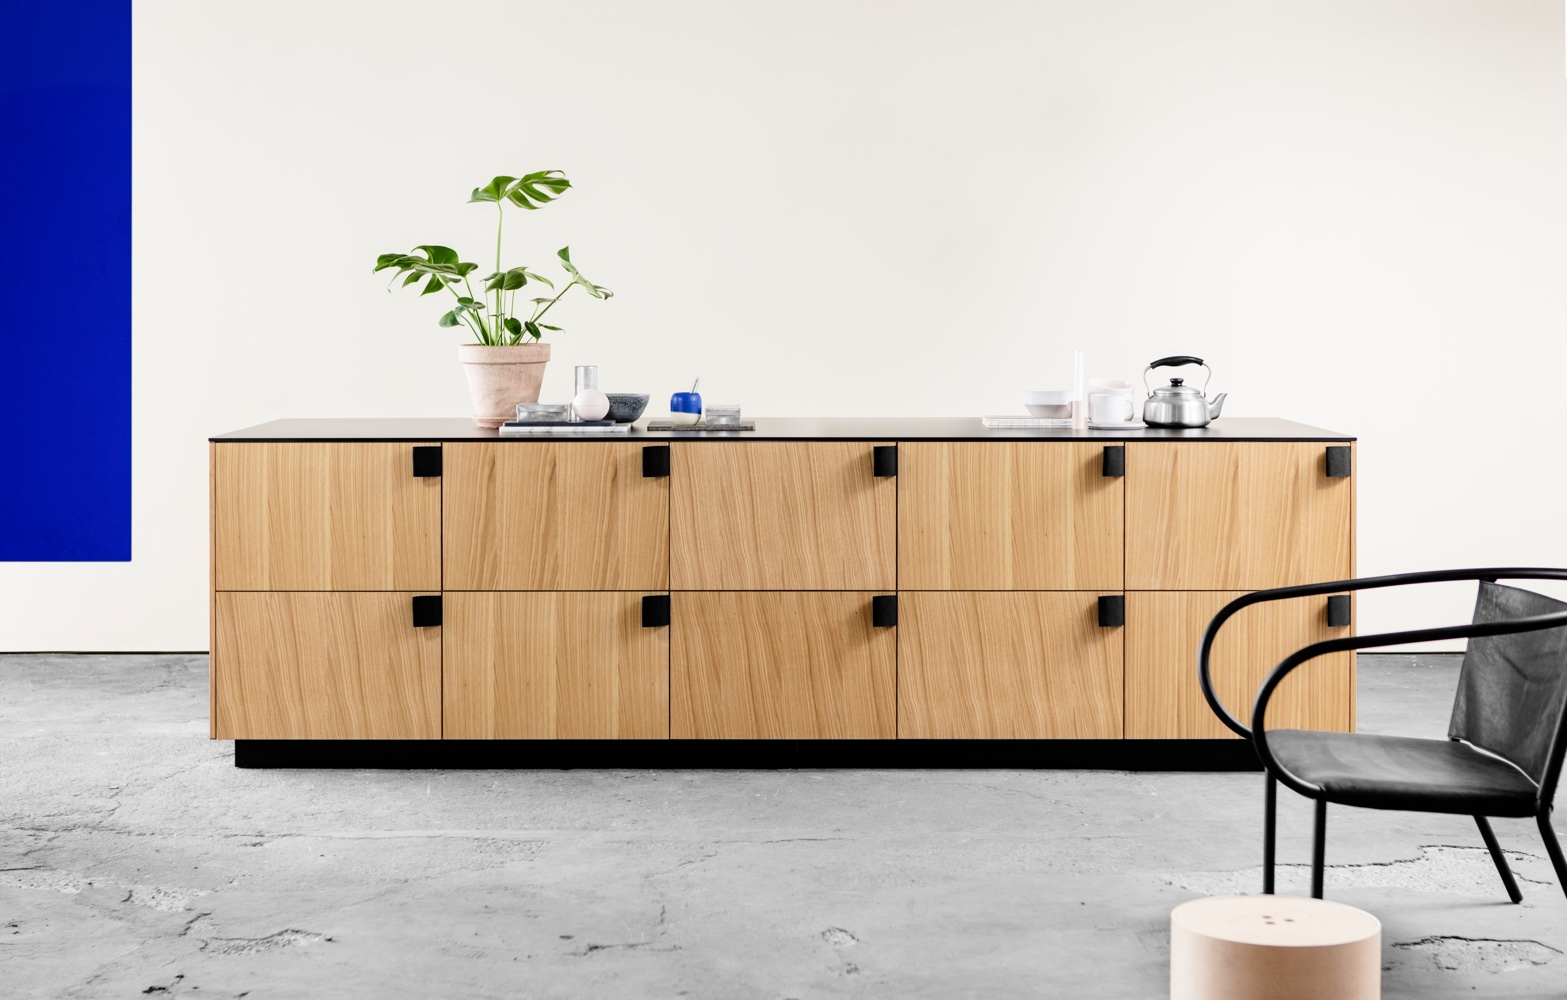 Ikea kitchens hacked by 4 enterprising establishments - Ikea kitchenettes ...